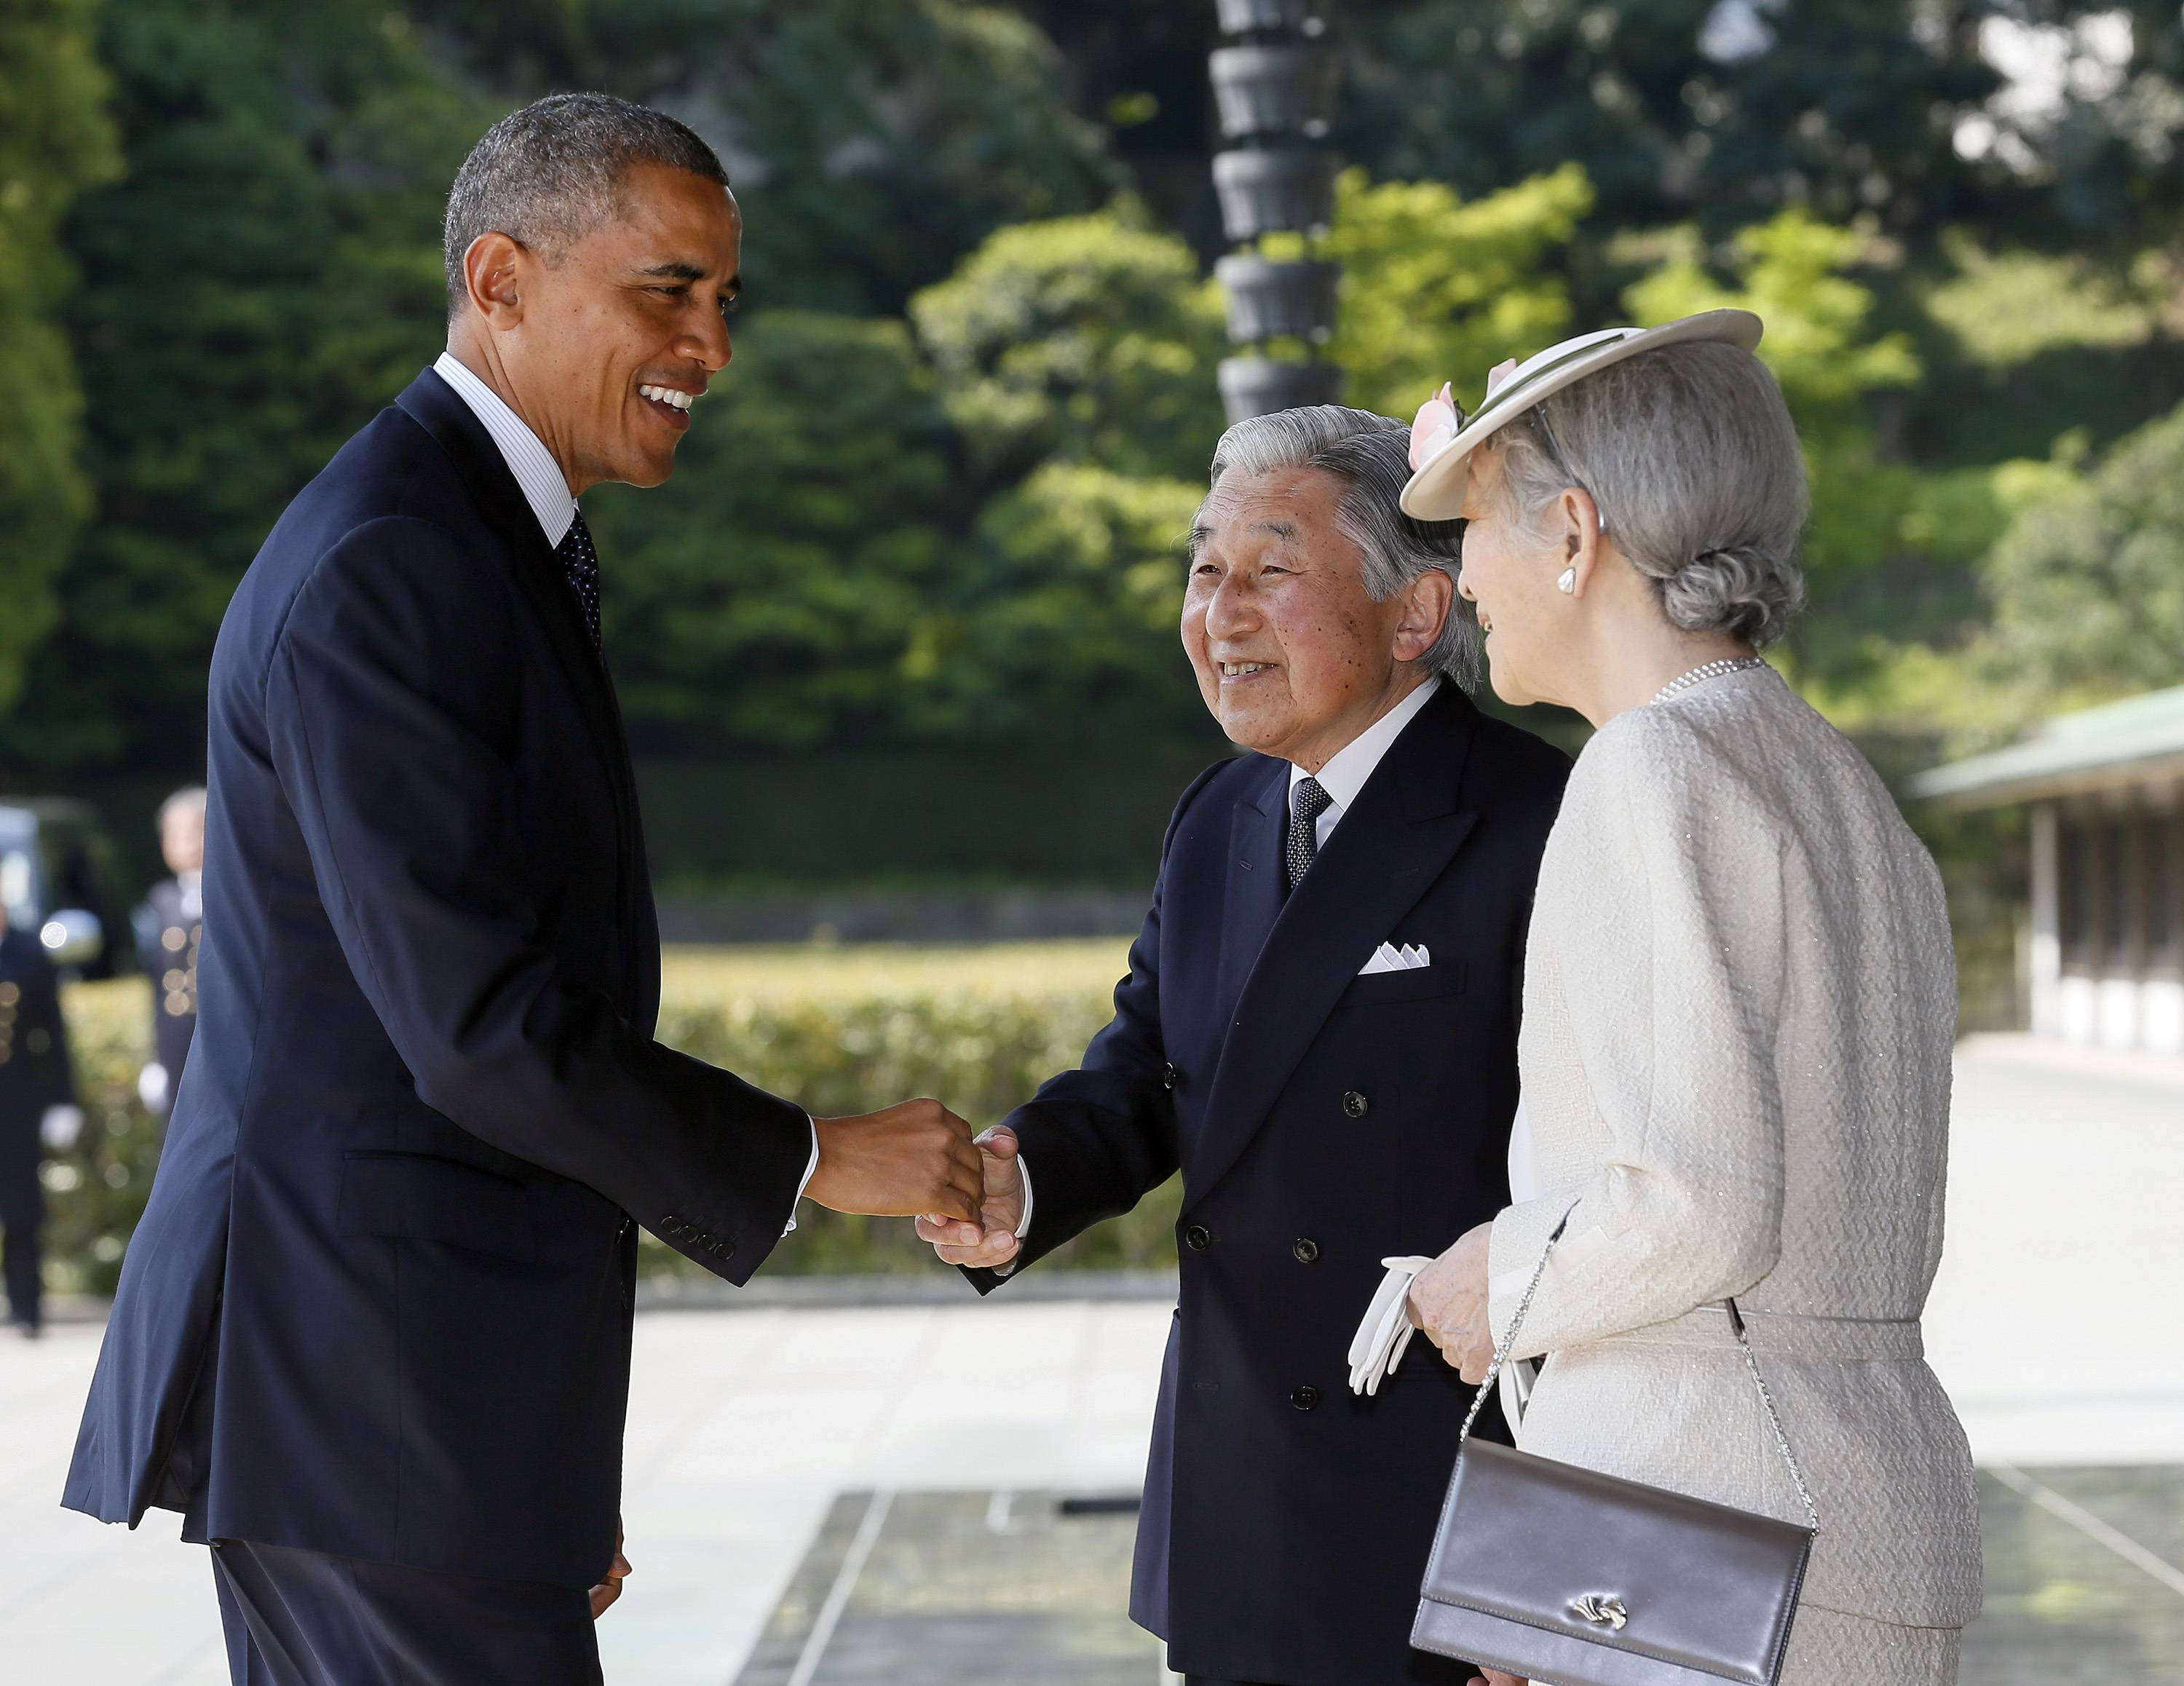 ASSOCIATED PRESS President Barack Obama is welcomed by Japan's Emperor Akihito and Empress Michiko upon his arrival at the Imperial Palace for the welcoming ceremony in Tokyo earlier today.